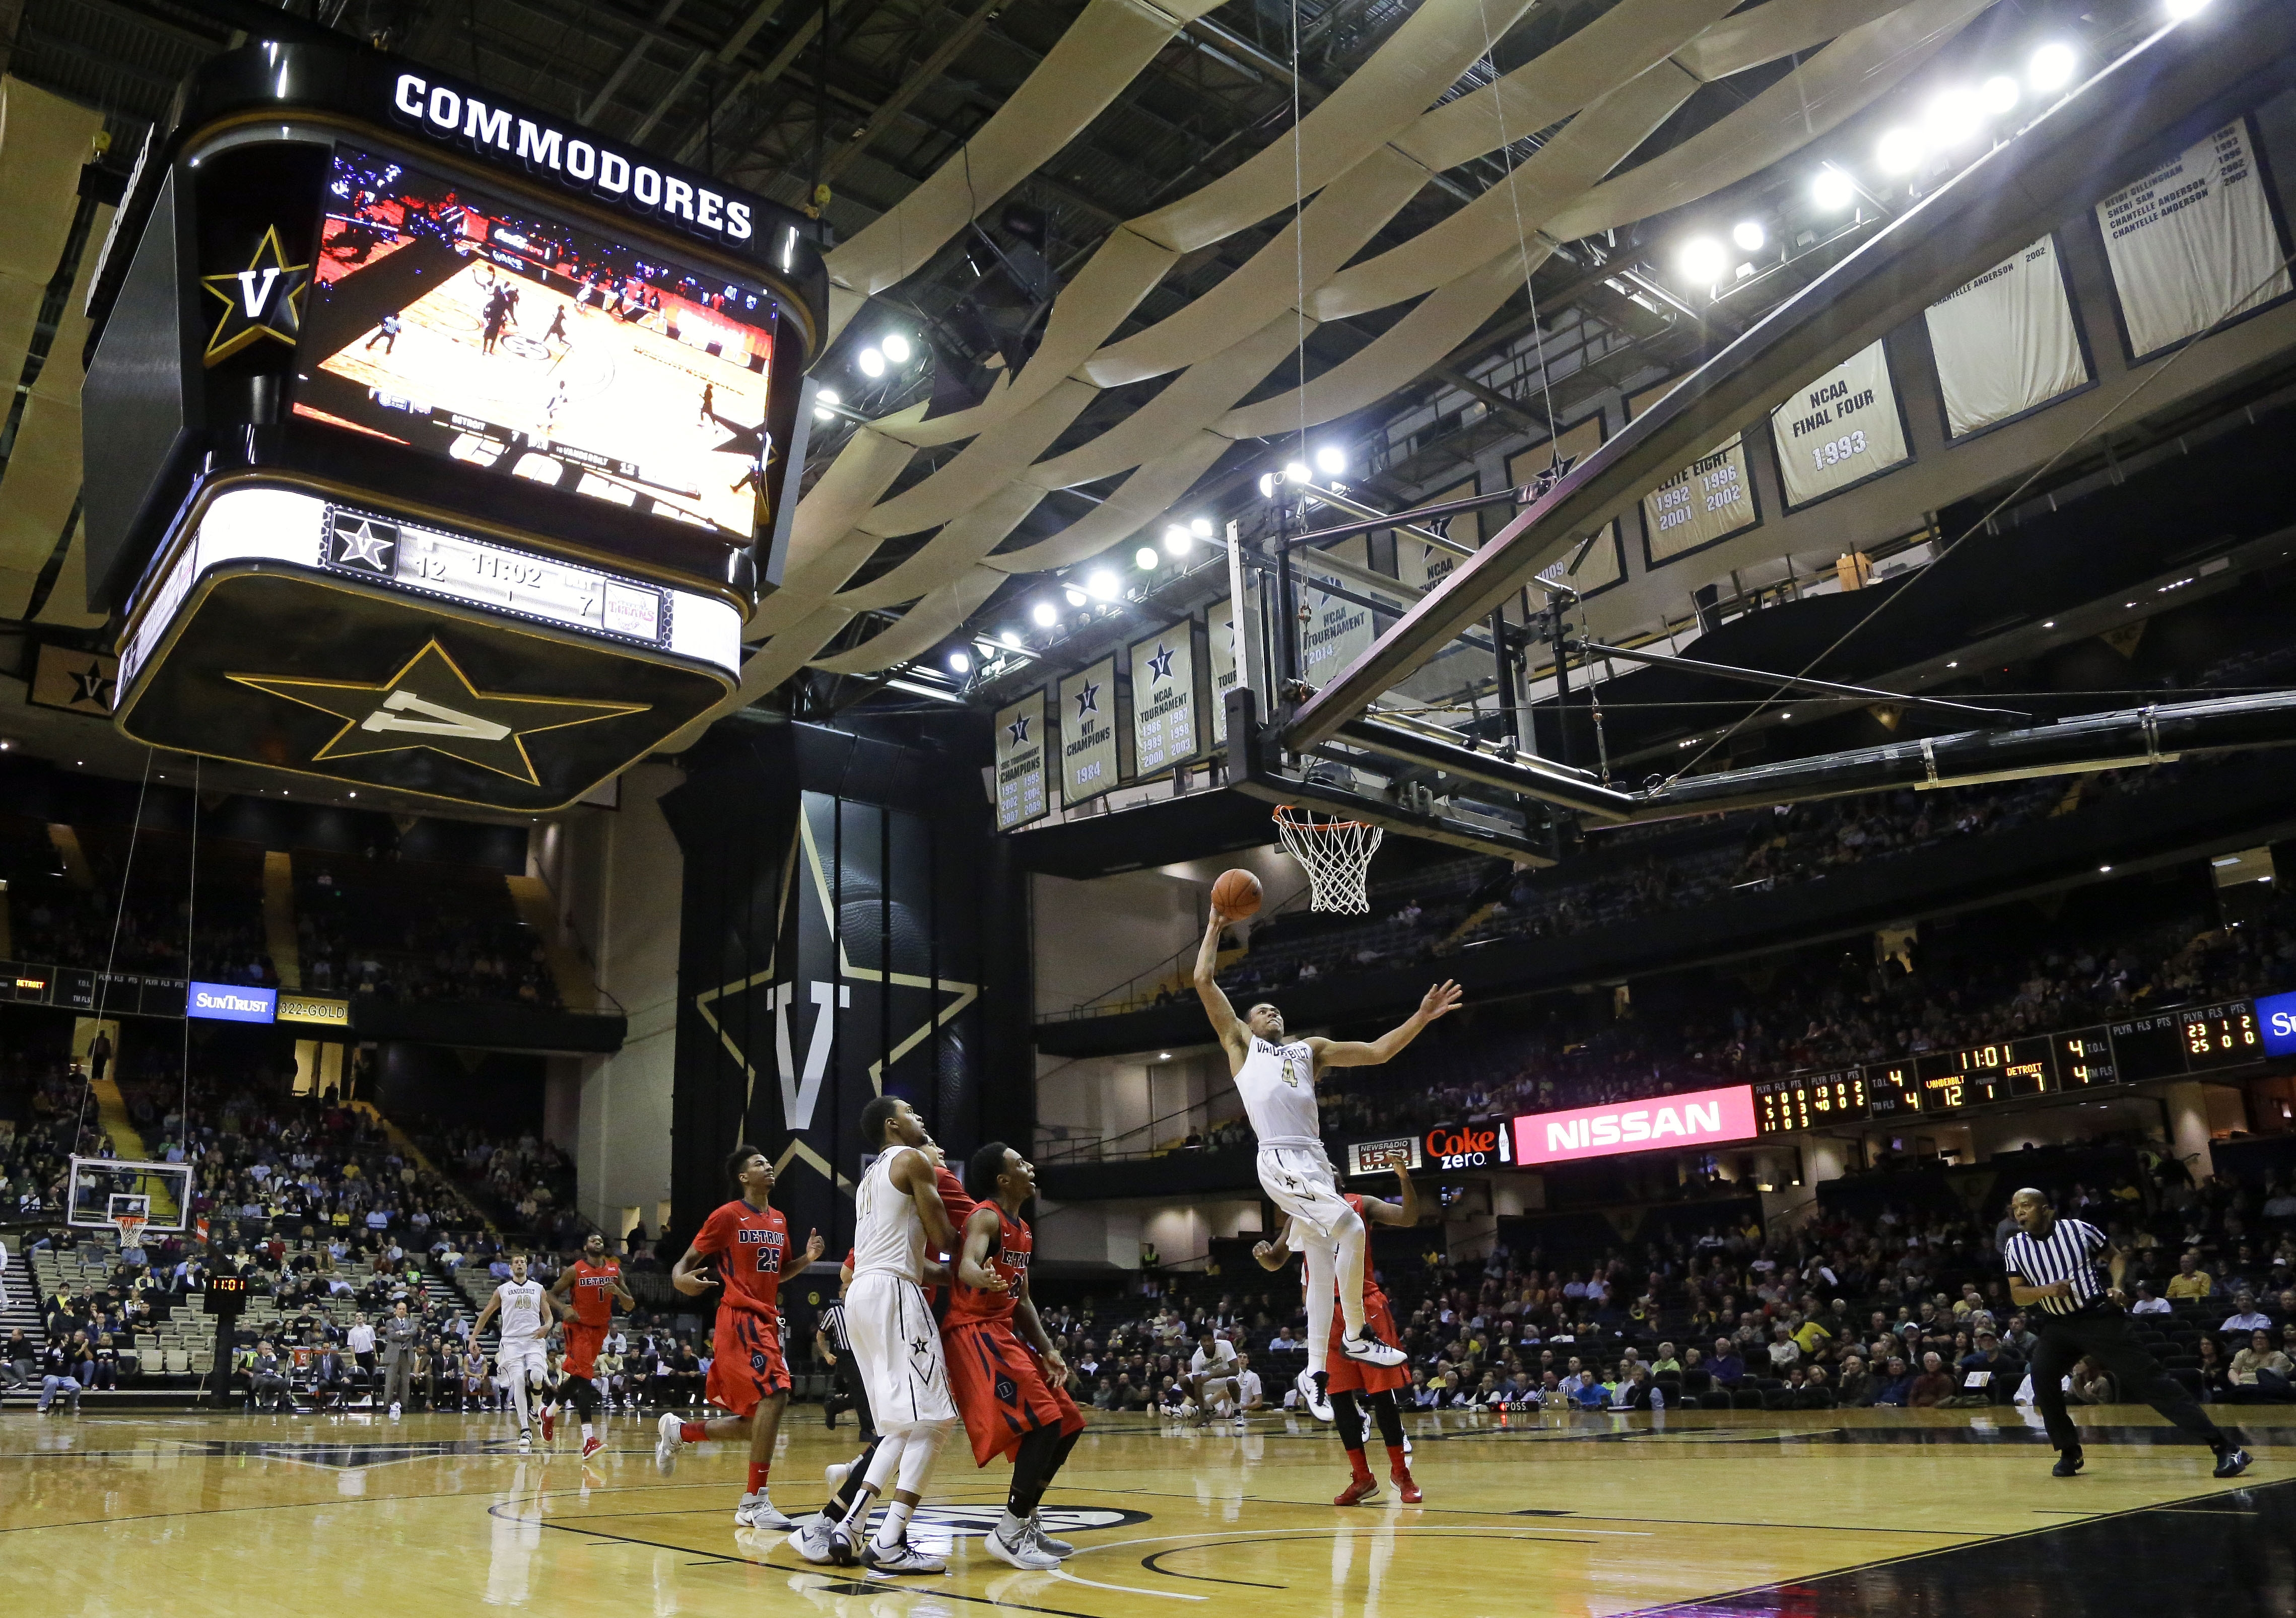 Vanderbilt guard Wade Baldwin IV (4) scores against Detroit in the first half of an NCAA college basketball game Wednesday, Dec. 2, 2015, in Nashville, Tenn. (AP Photo/Mark Humphrey)